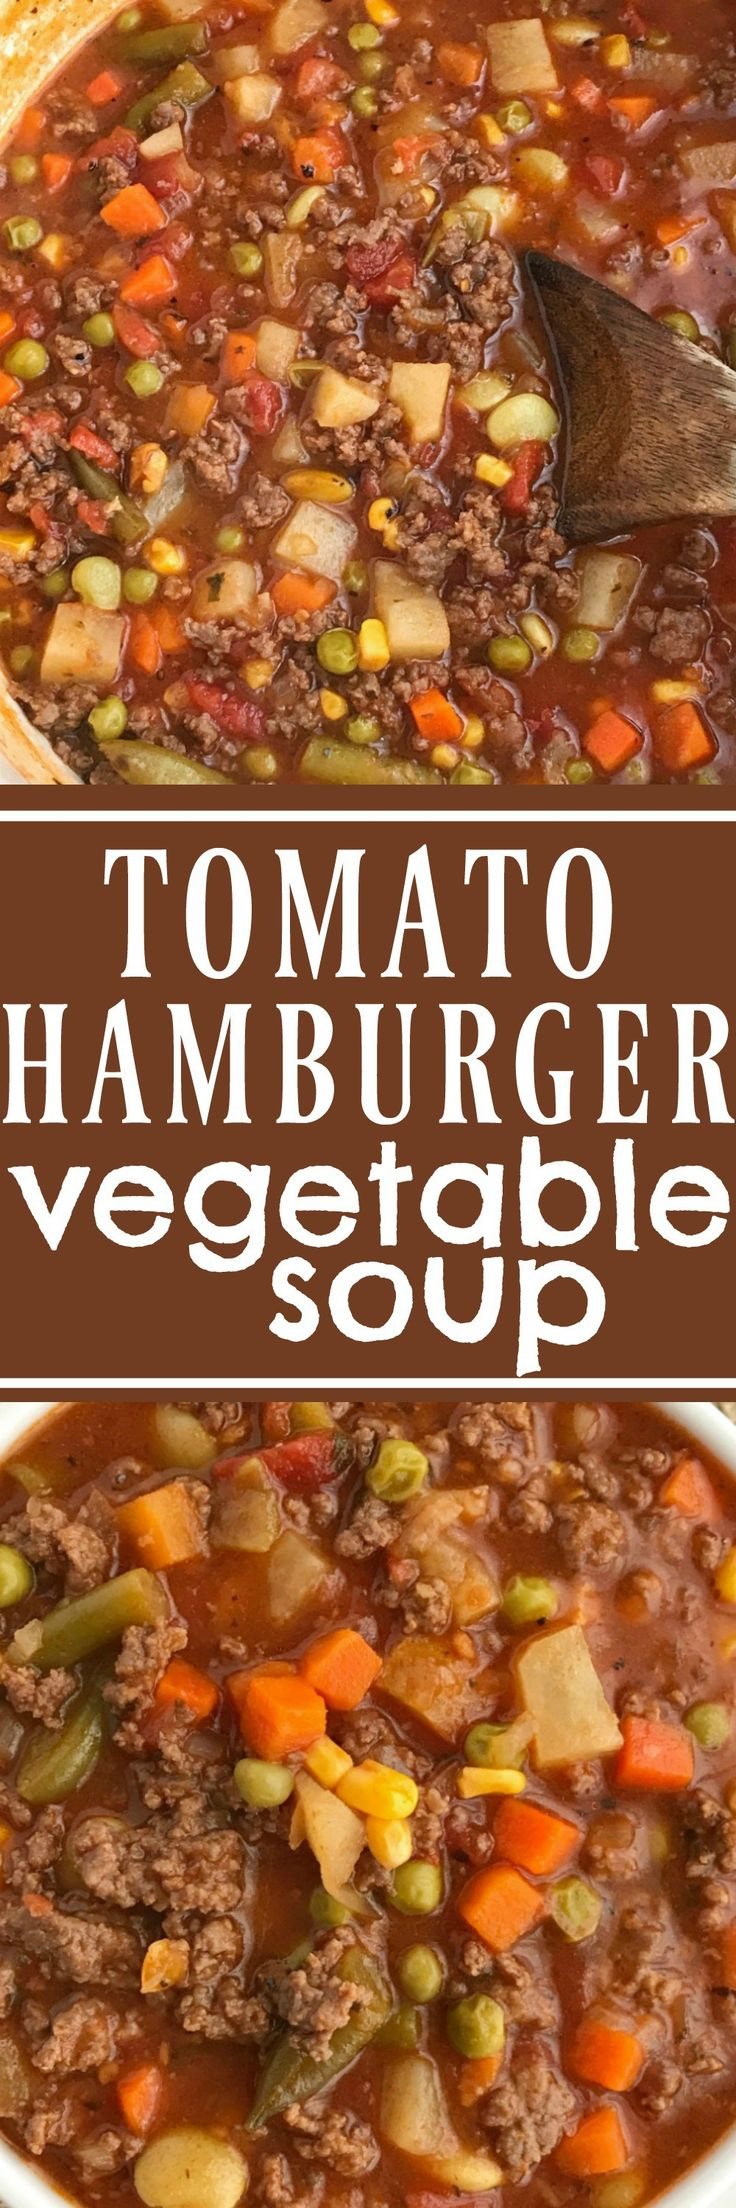 GF Tomato Hamburger Vegetable Soup